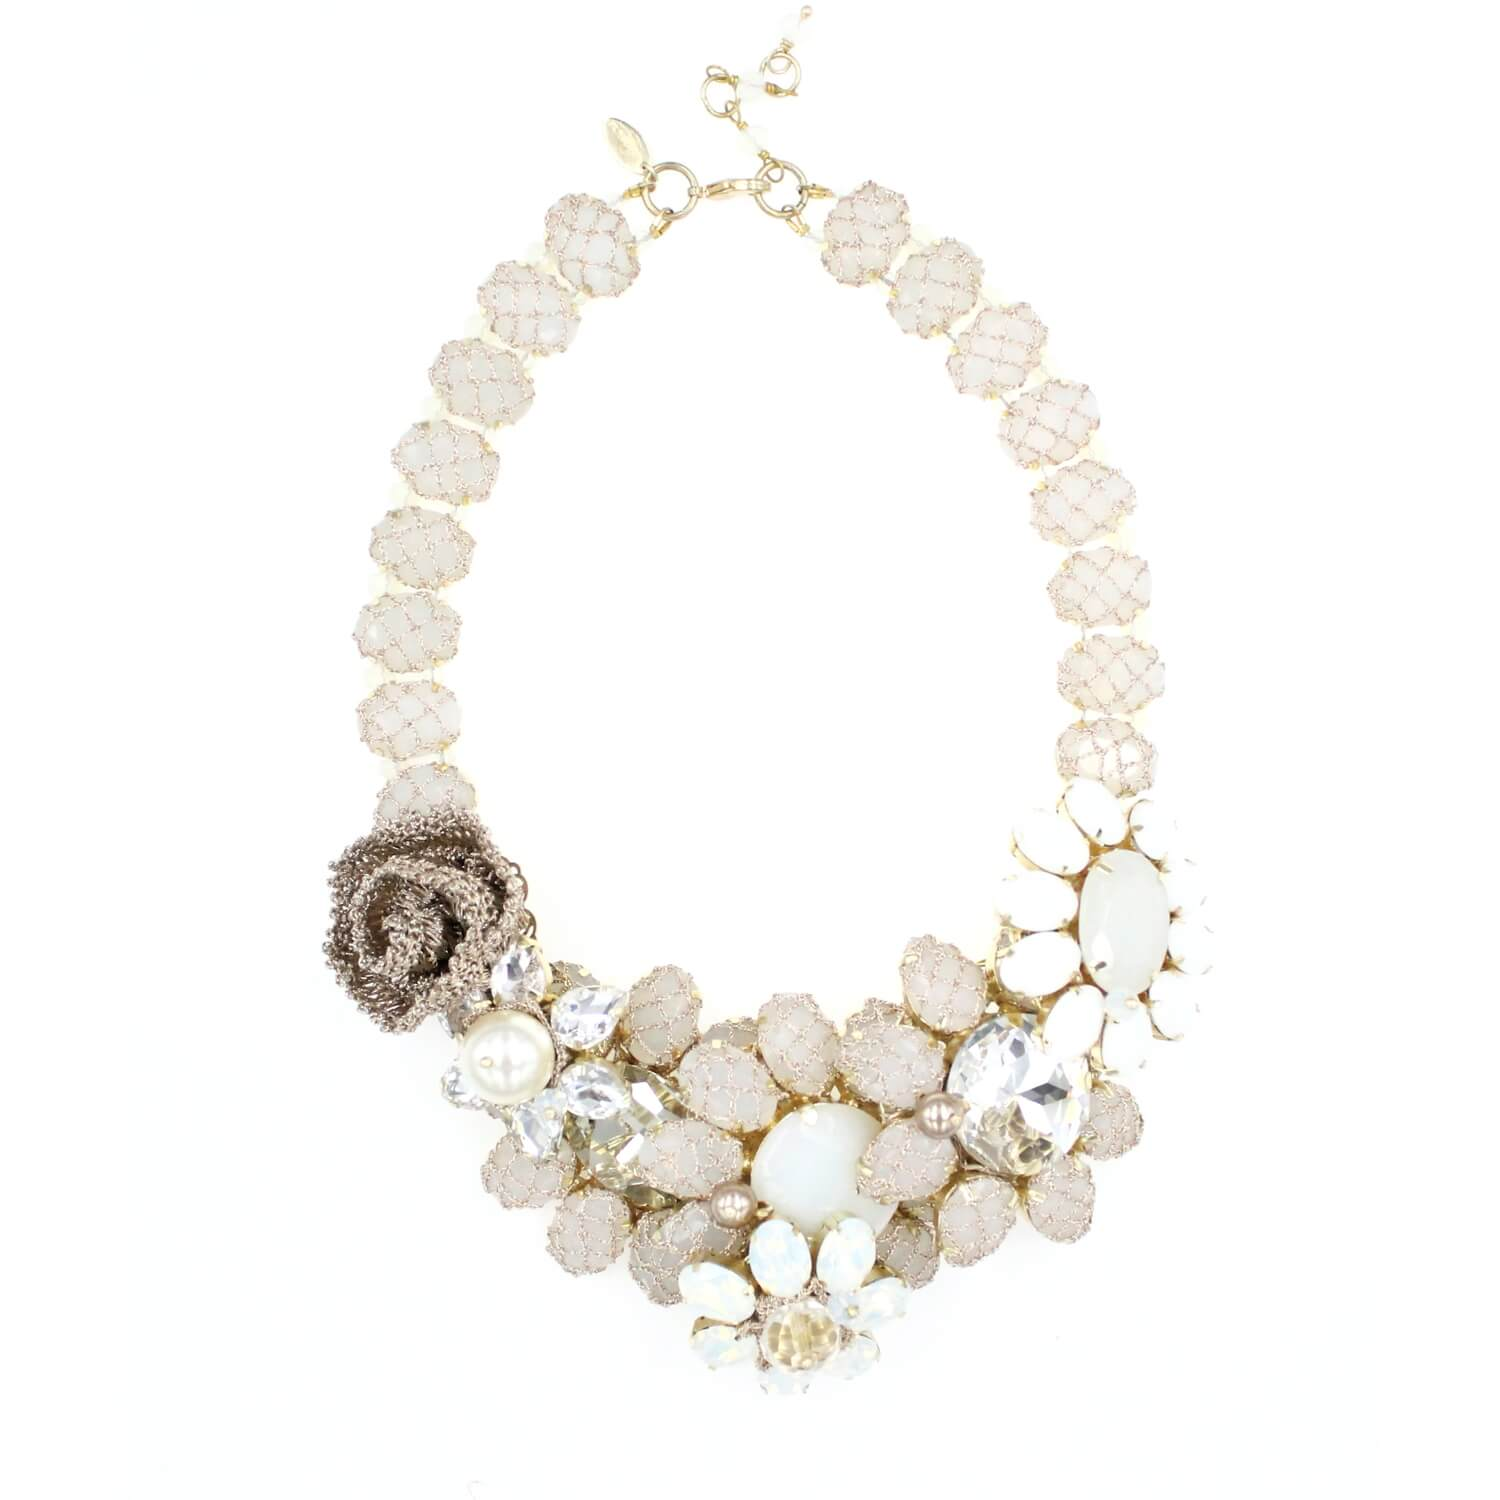 Frangipani Garden Flower Crystal Necklace - Ivory